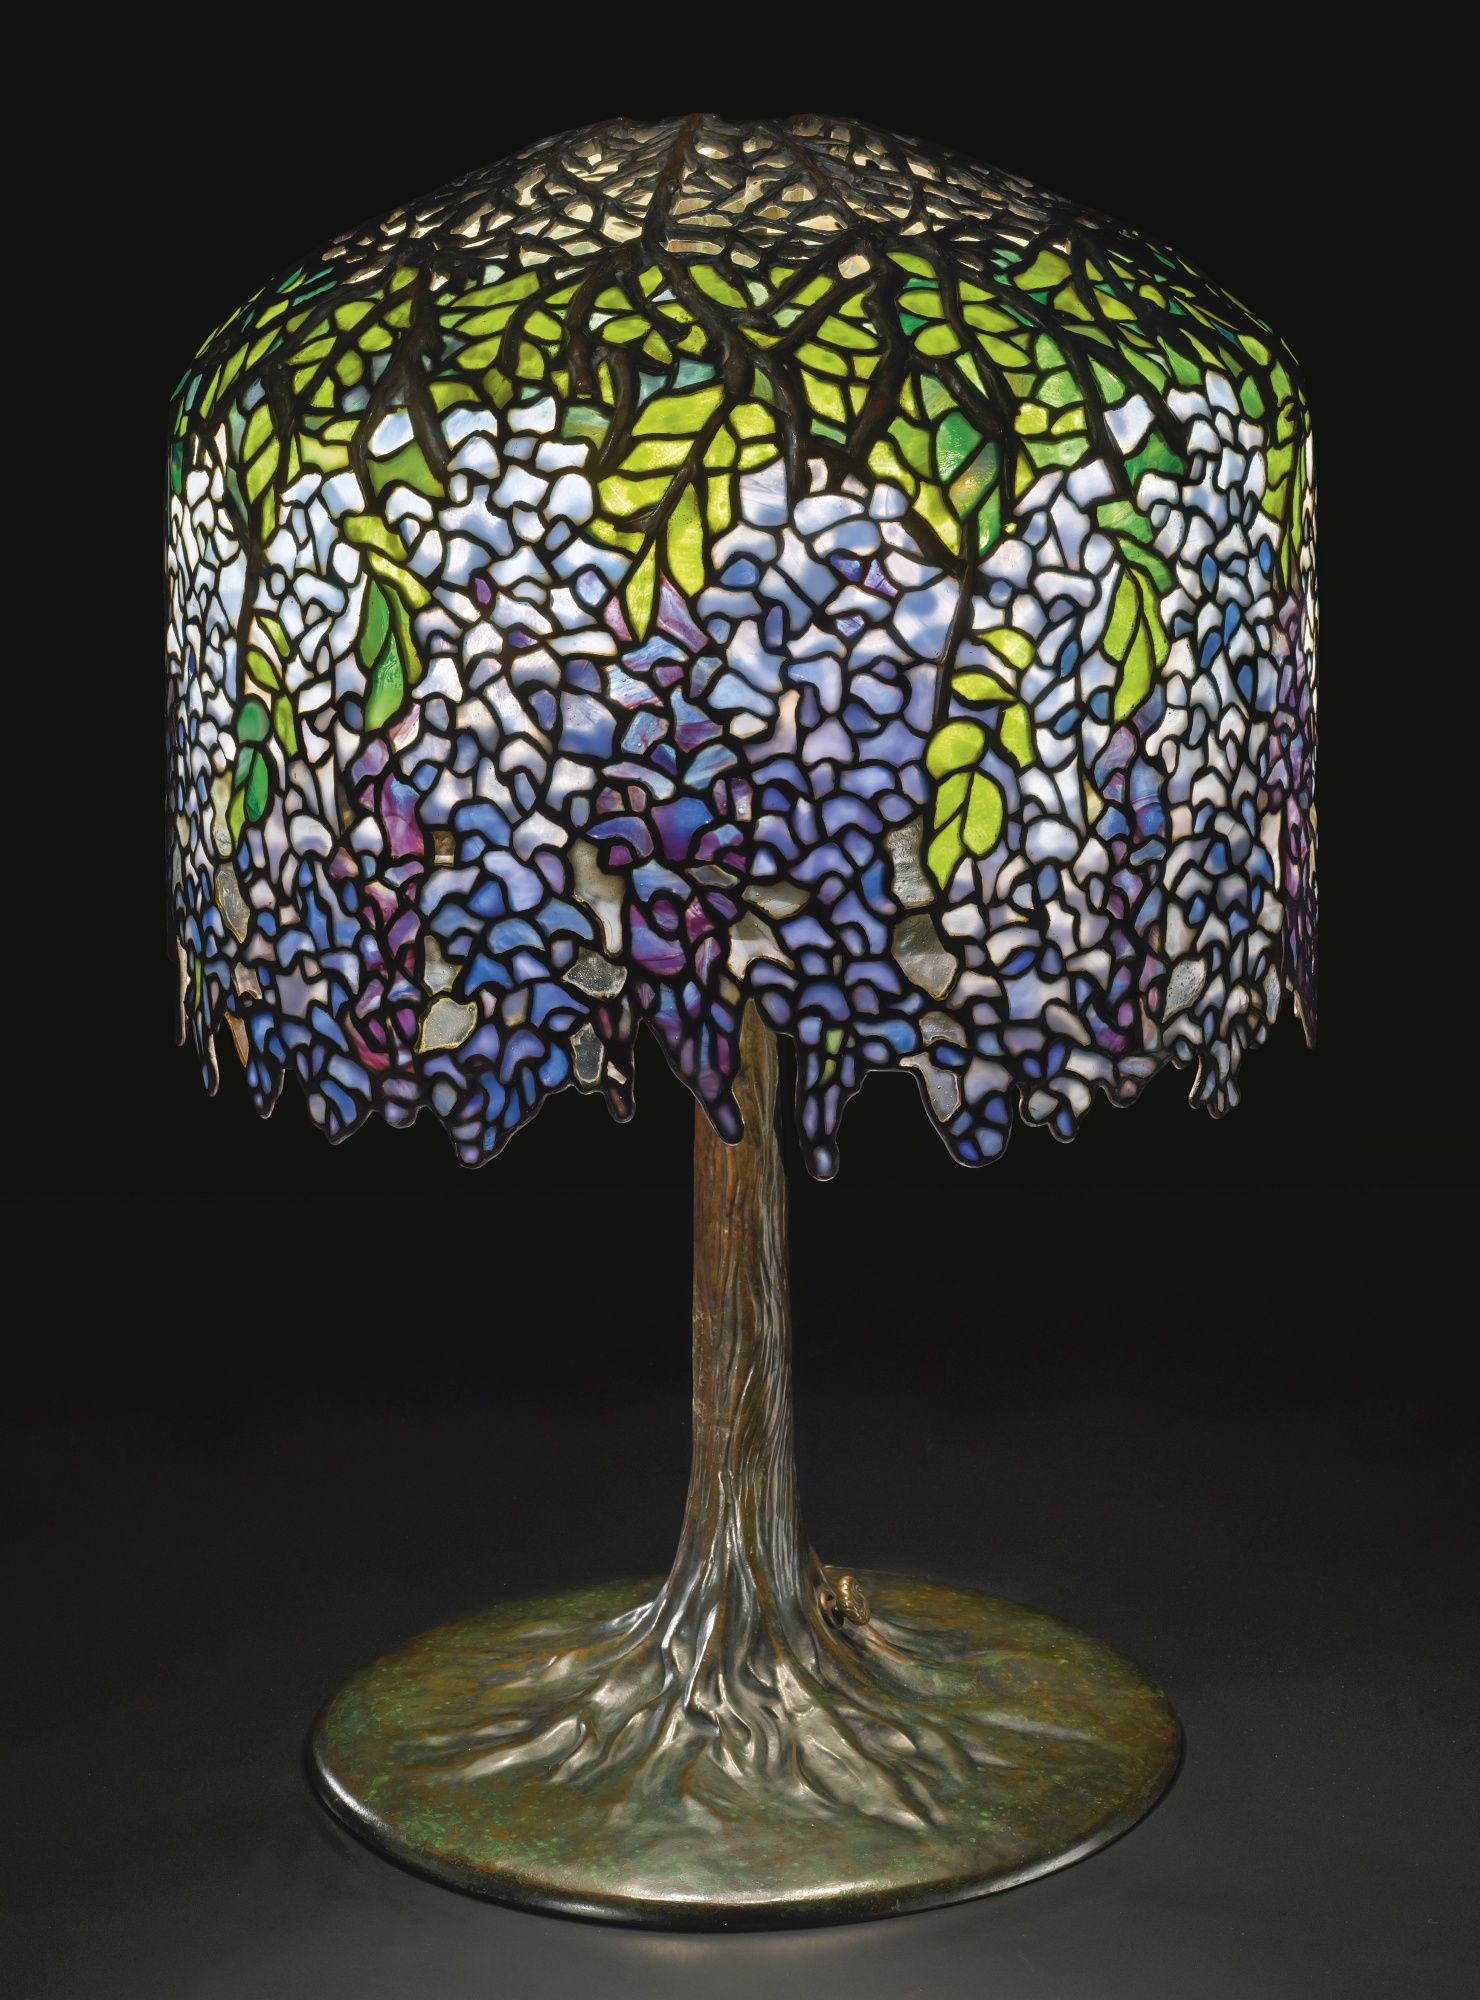 Tiffany studios new york wisteria leaded glass and patinated tiffany studios new york wisteria leaded glass and patinated bronze table lamp mozeypictures Image collections